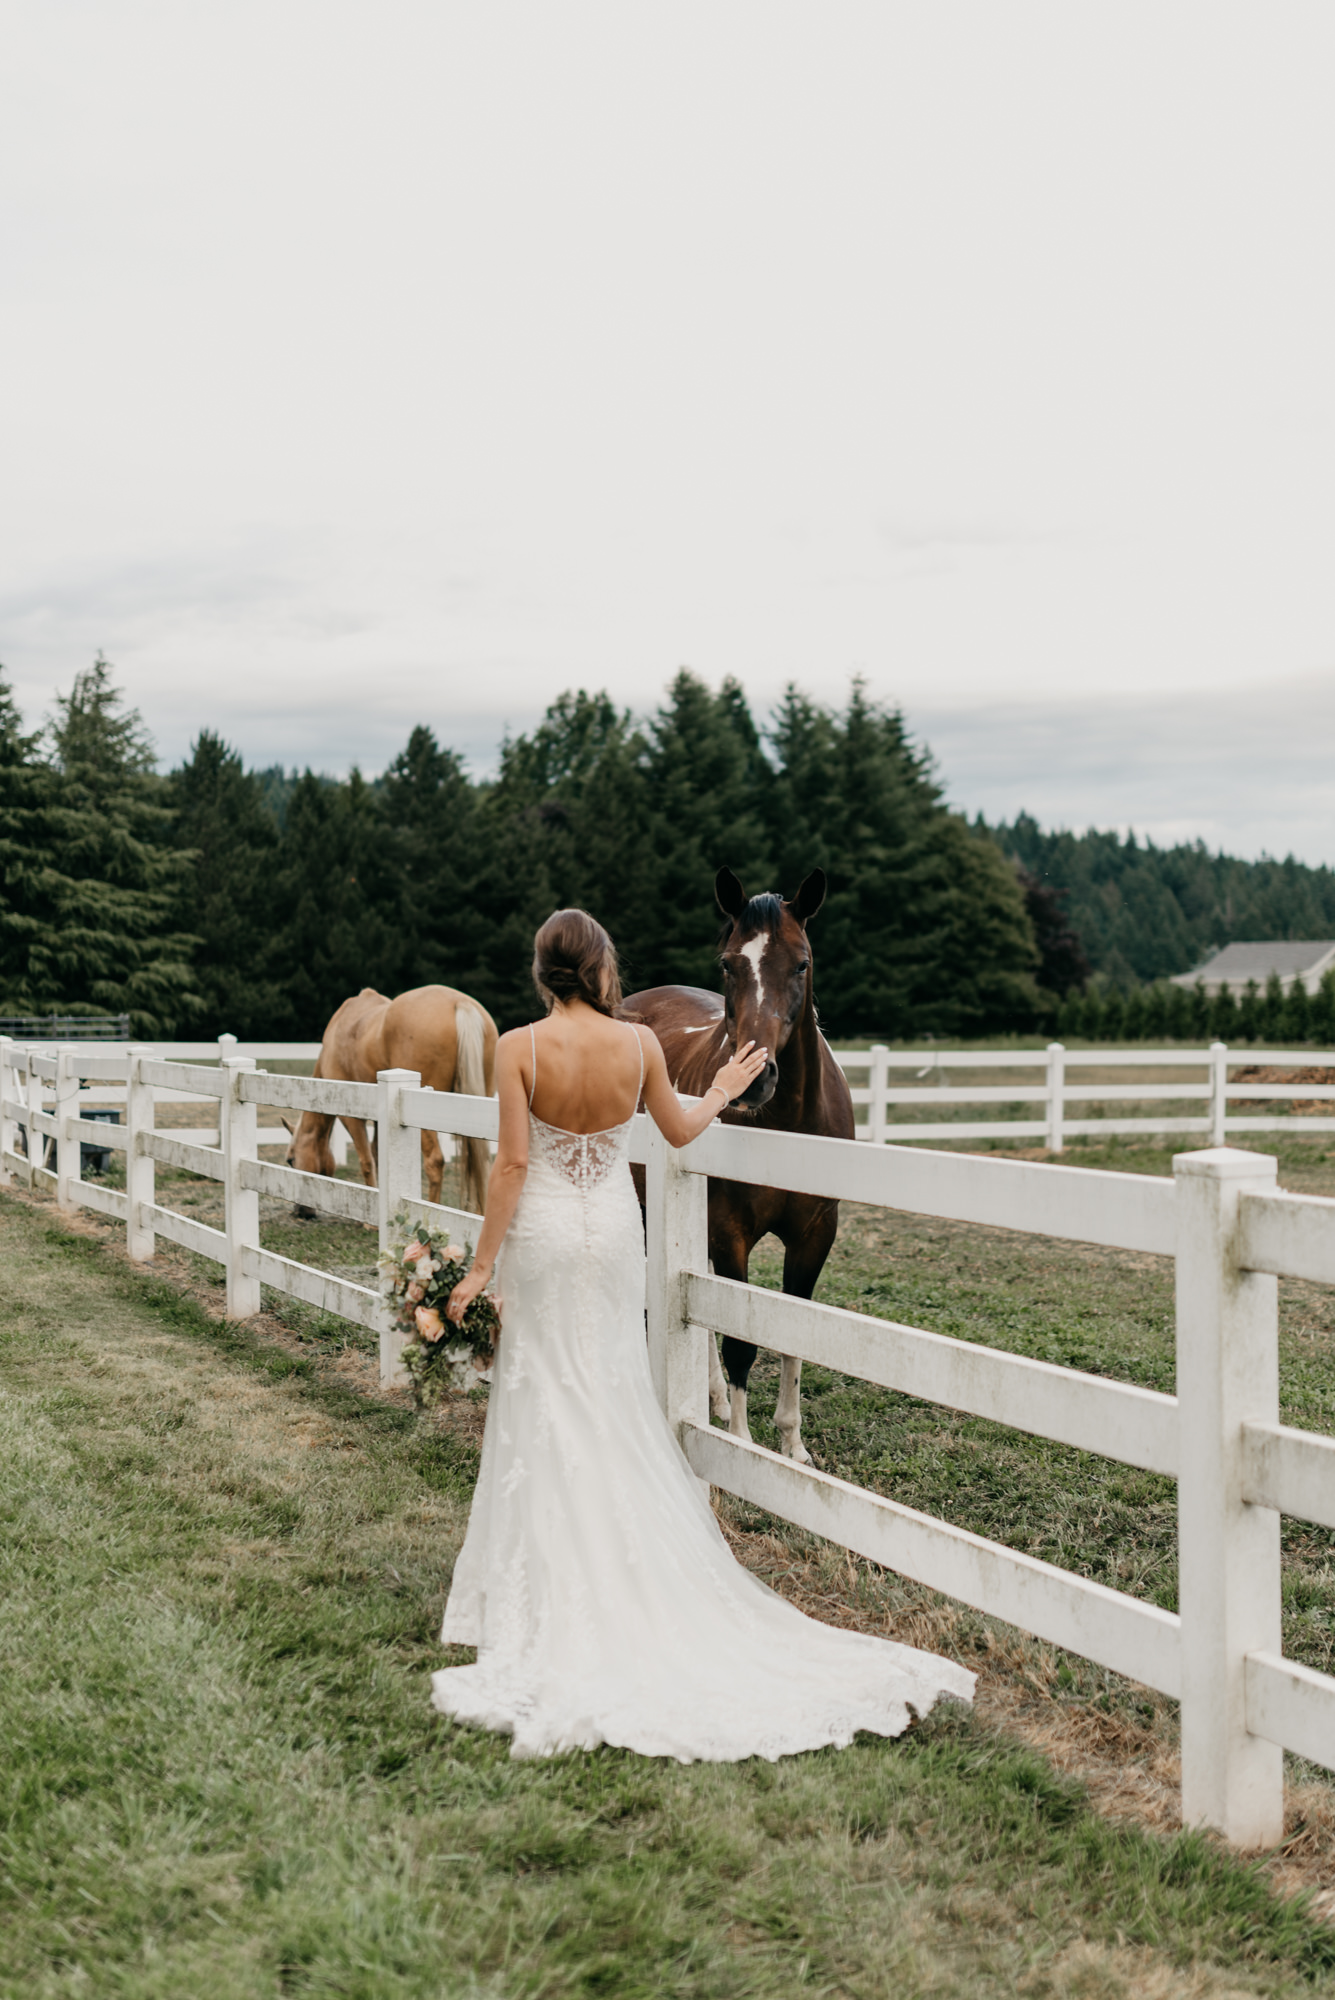 188-barn-kestrel-portland-northwest-horse-sunset-wedding.jpg